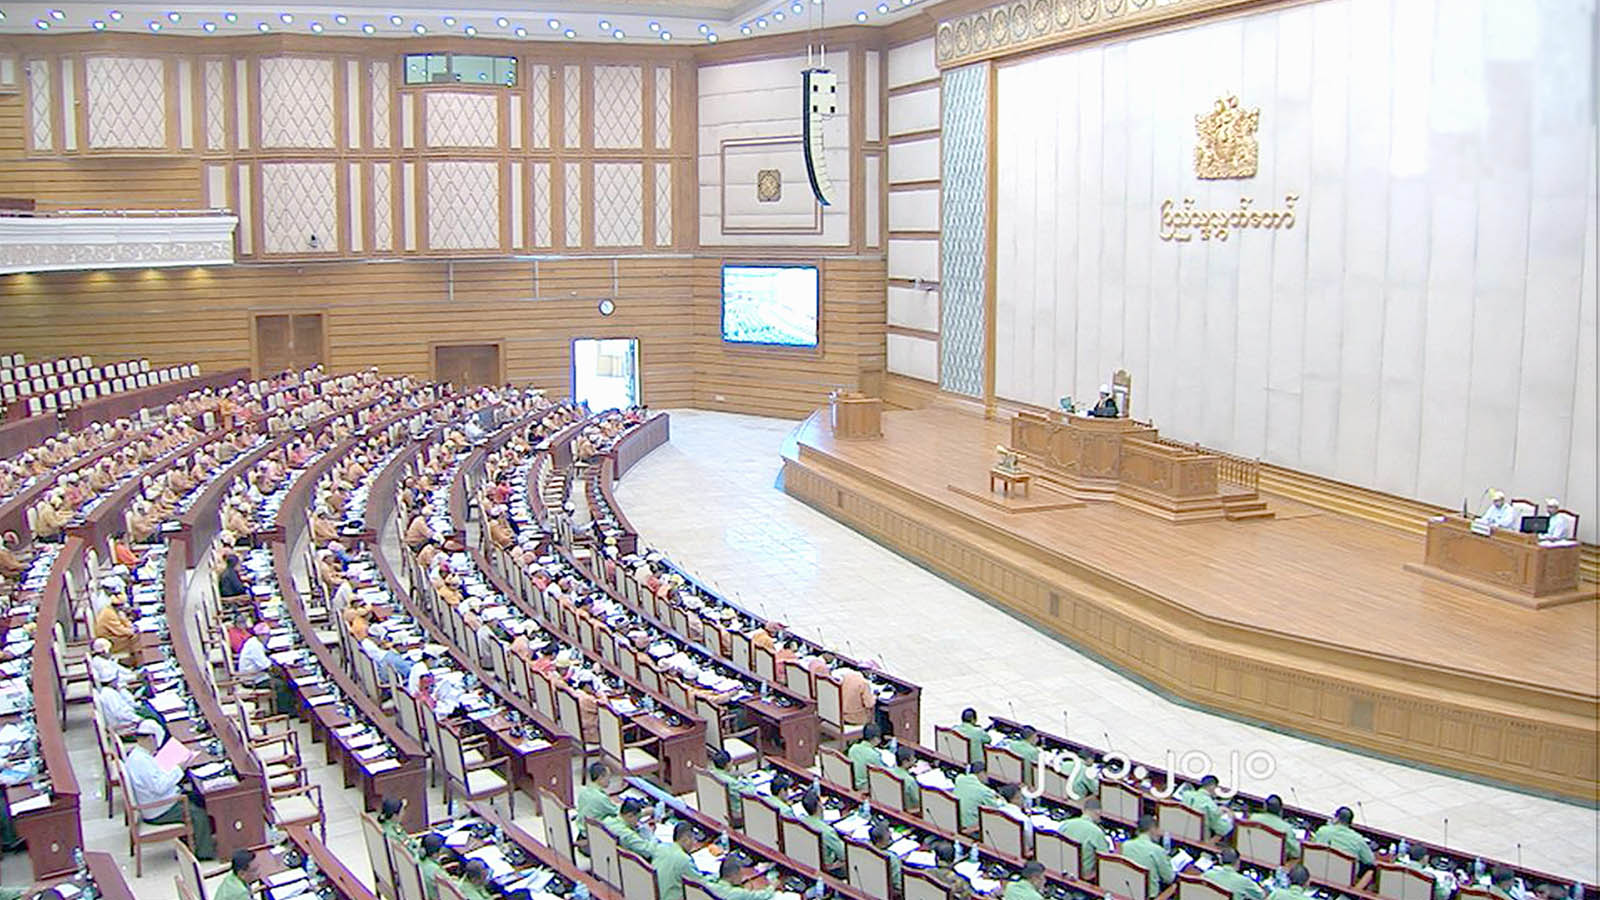 The 15th regular meeting of Second Pyithu Hluttaw being convened in Nay Pyi Taw on 27 January, 2020.